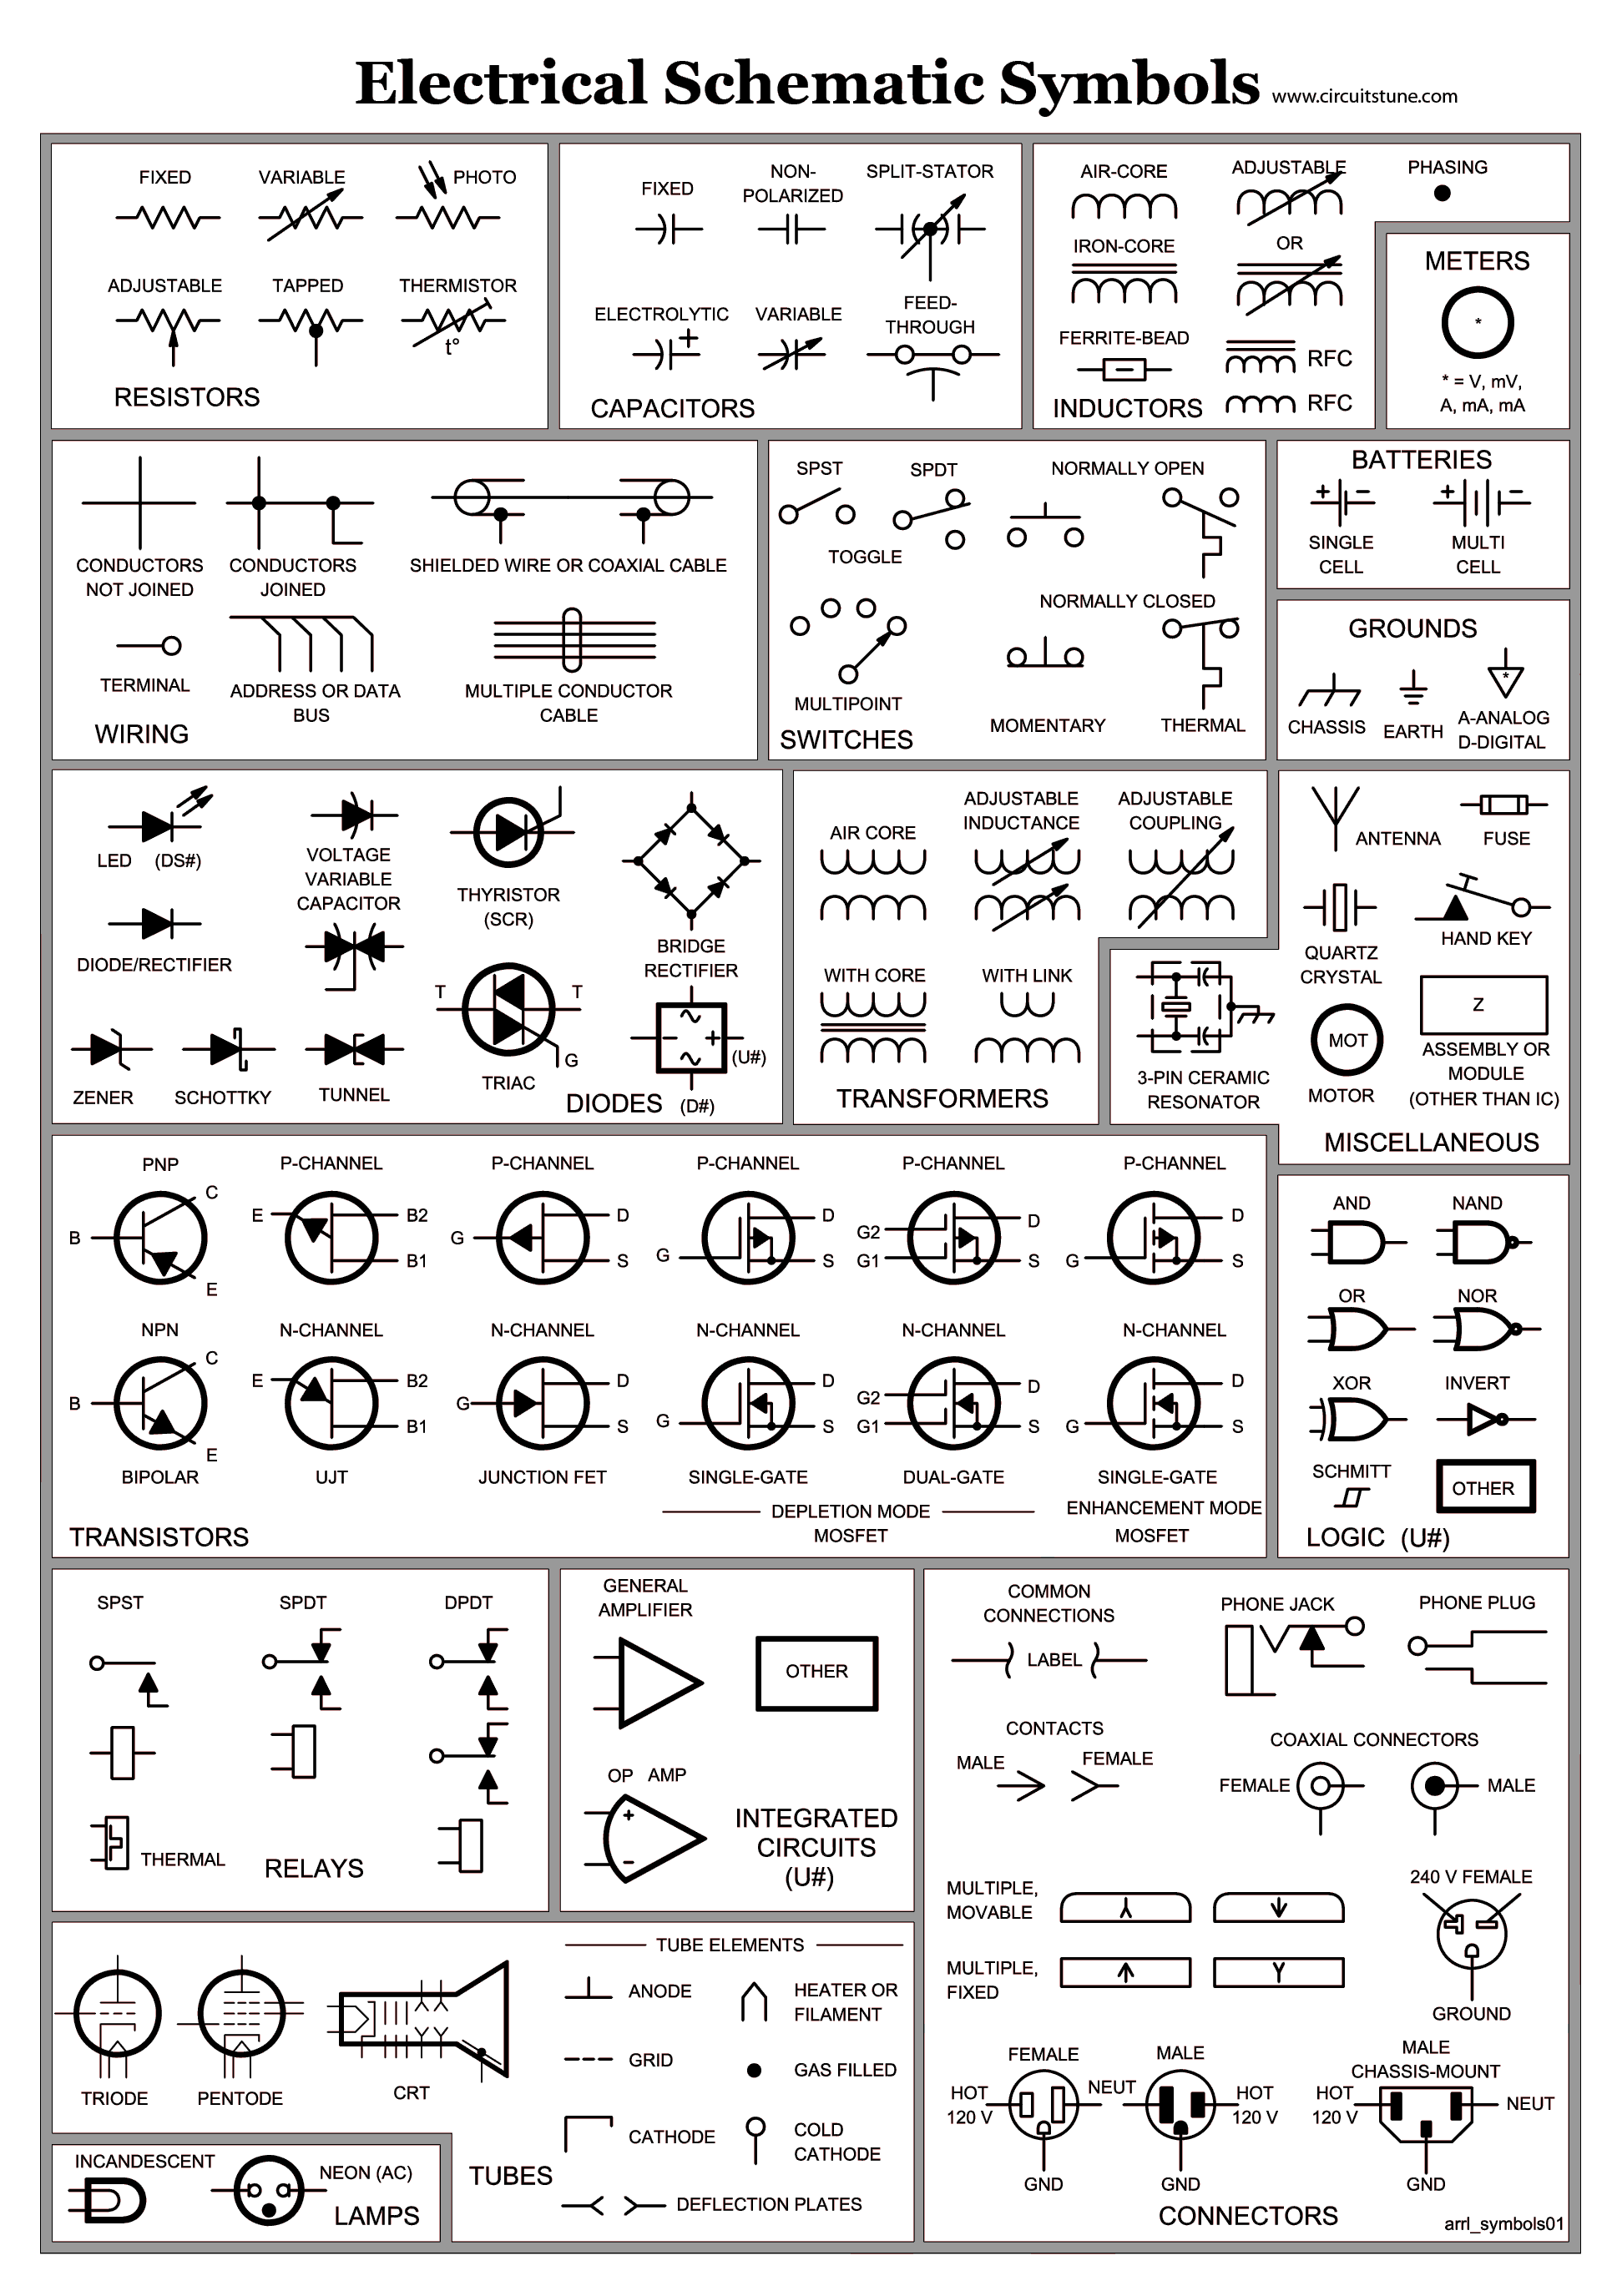 electrical schematic symbols skinsquiggles pinterest rh pinterest com electrical diagram symbols uk electrical diagram symbols relay